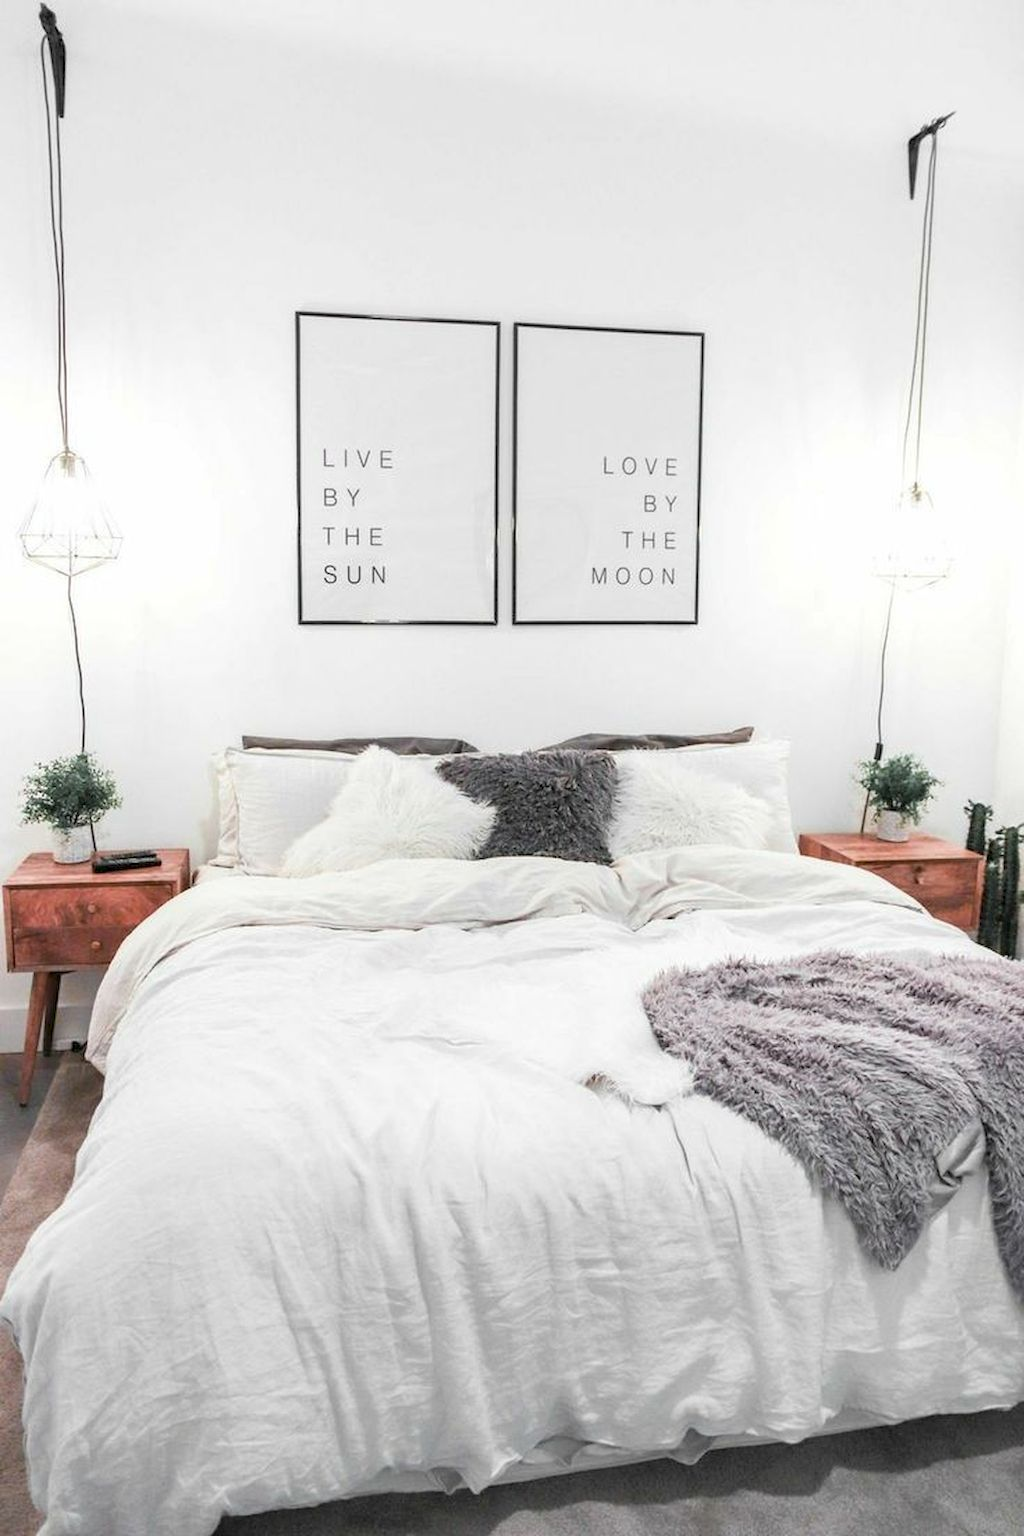 Awesome 60 Small First Apartment Decorating Ideas on A Budget https ...